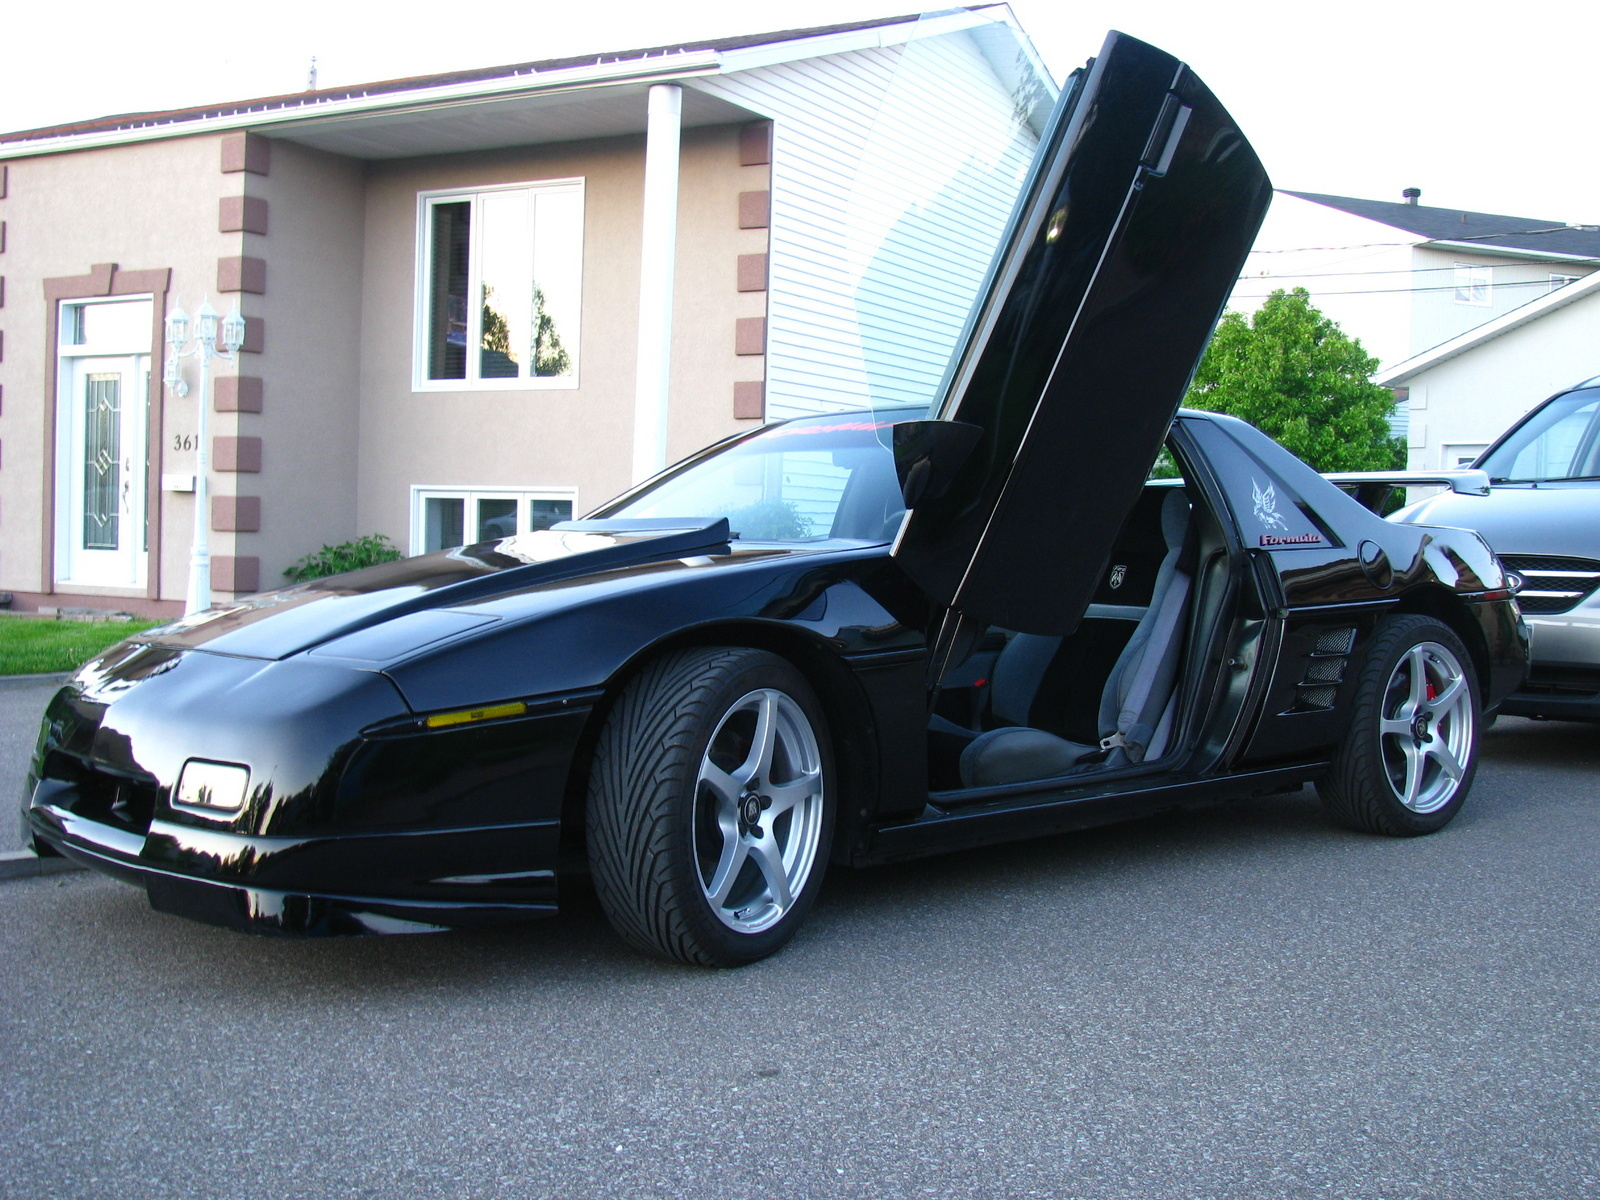 1988 pontiac fiero - overview